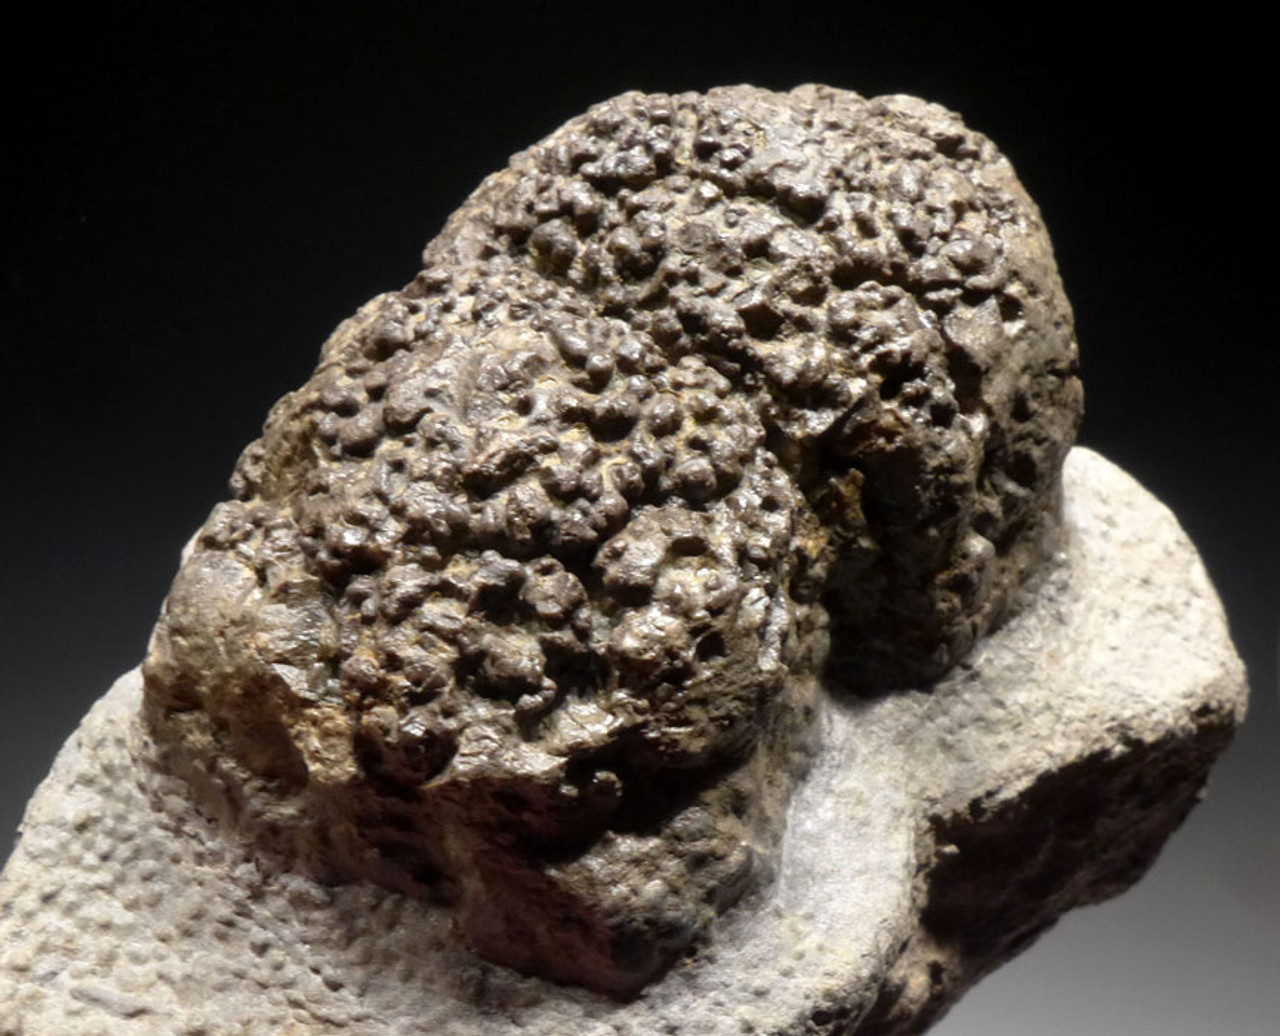 ST009 - THREE-DIMENSIONAL LACUSTRINE FOSSIL STROMATOLITE COLONIES FROM THE LOWER PERMIAN OF GERMANY